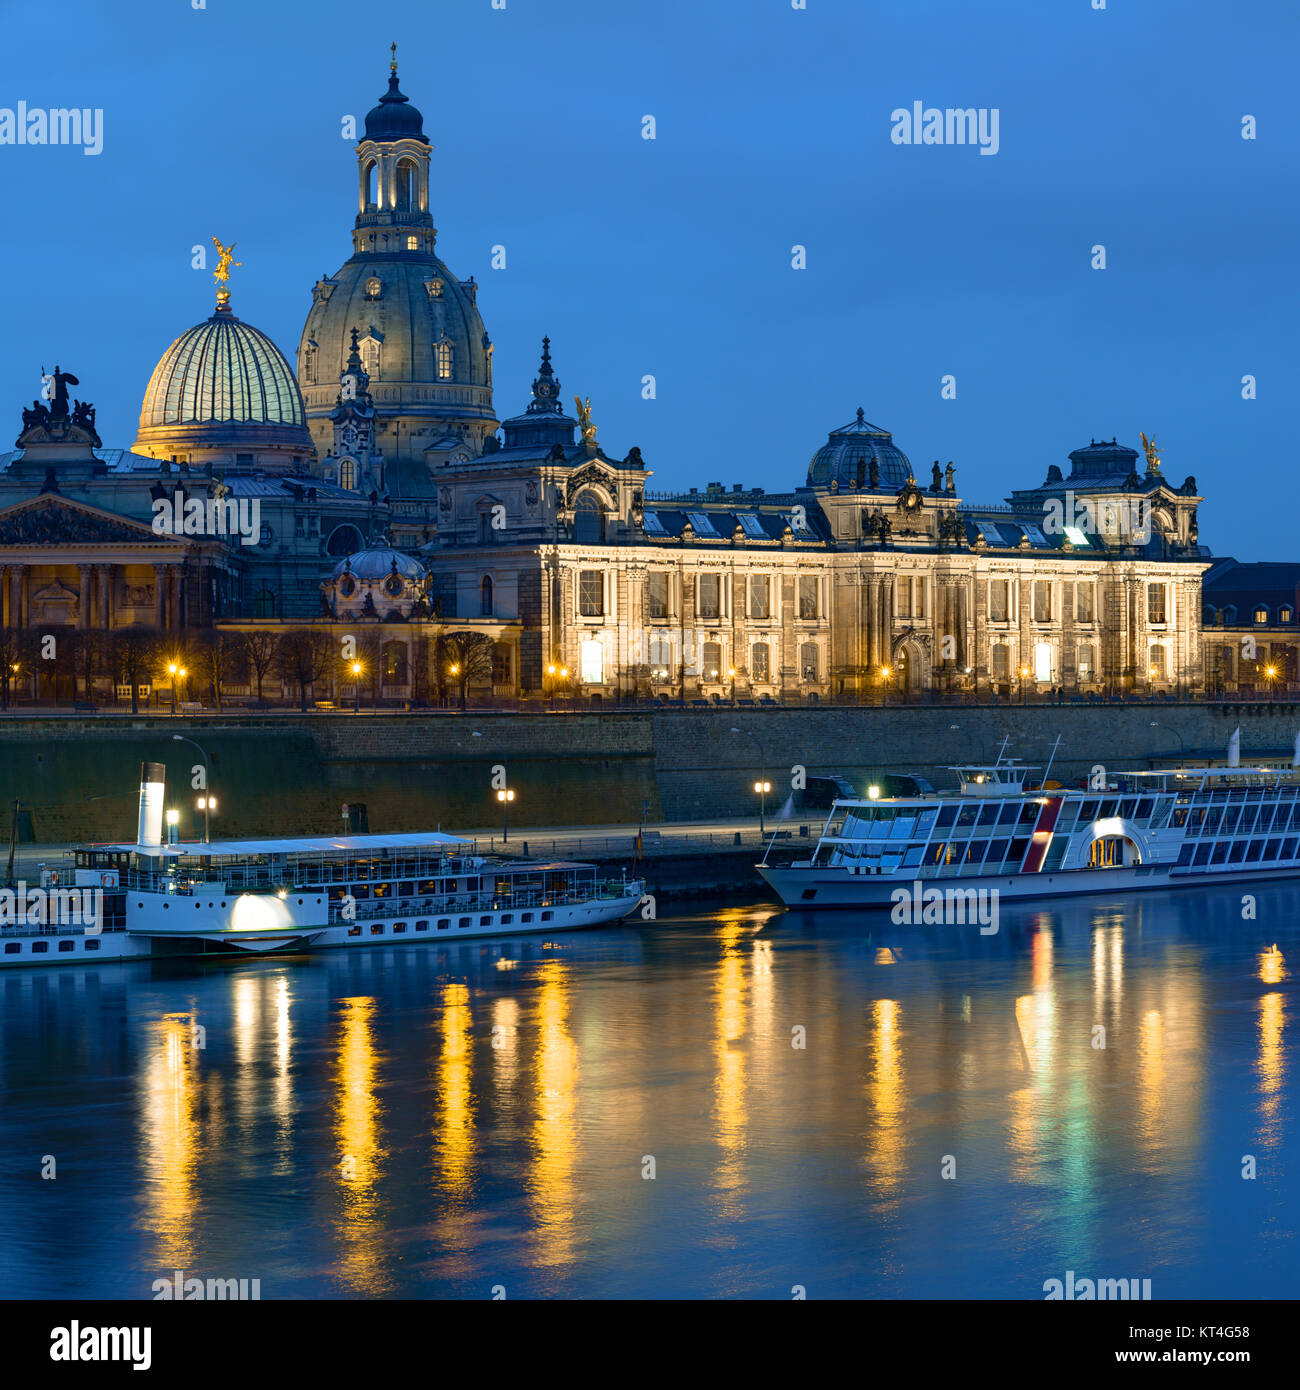 Dresden at night, with historical passenger ships, Bruhl's Terrace and Frauenkirchem reflected in the river - Stock Image